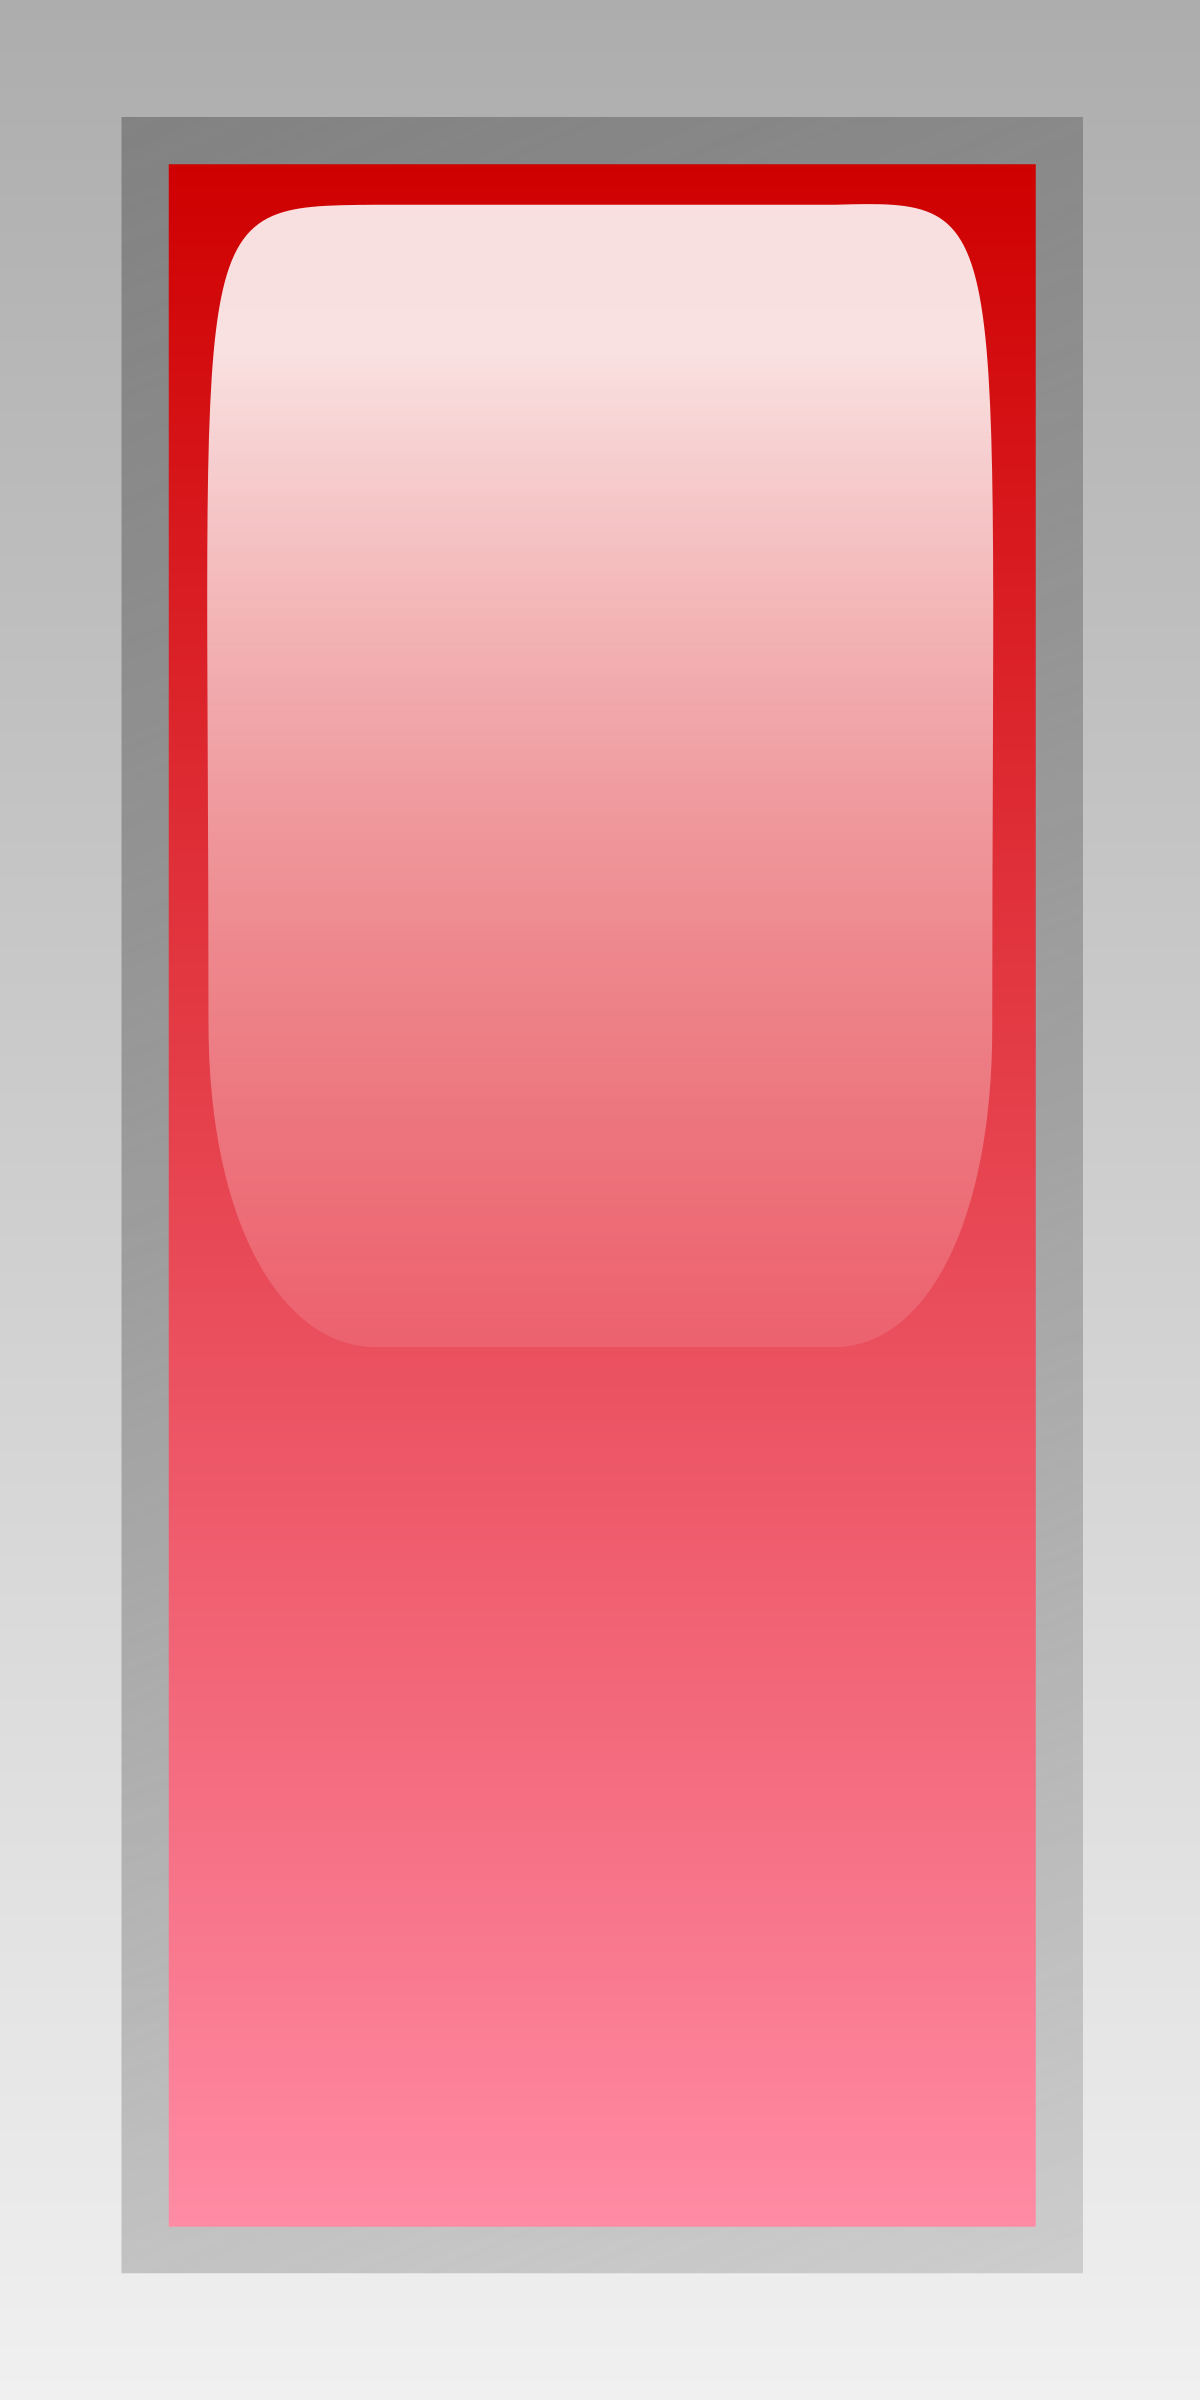 led rectangular v red by jean_victor_balin